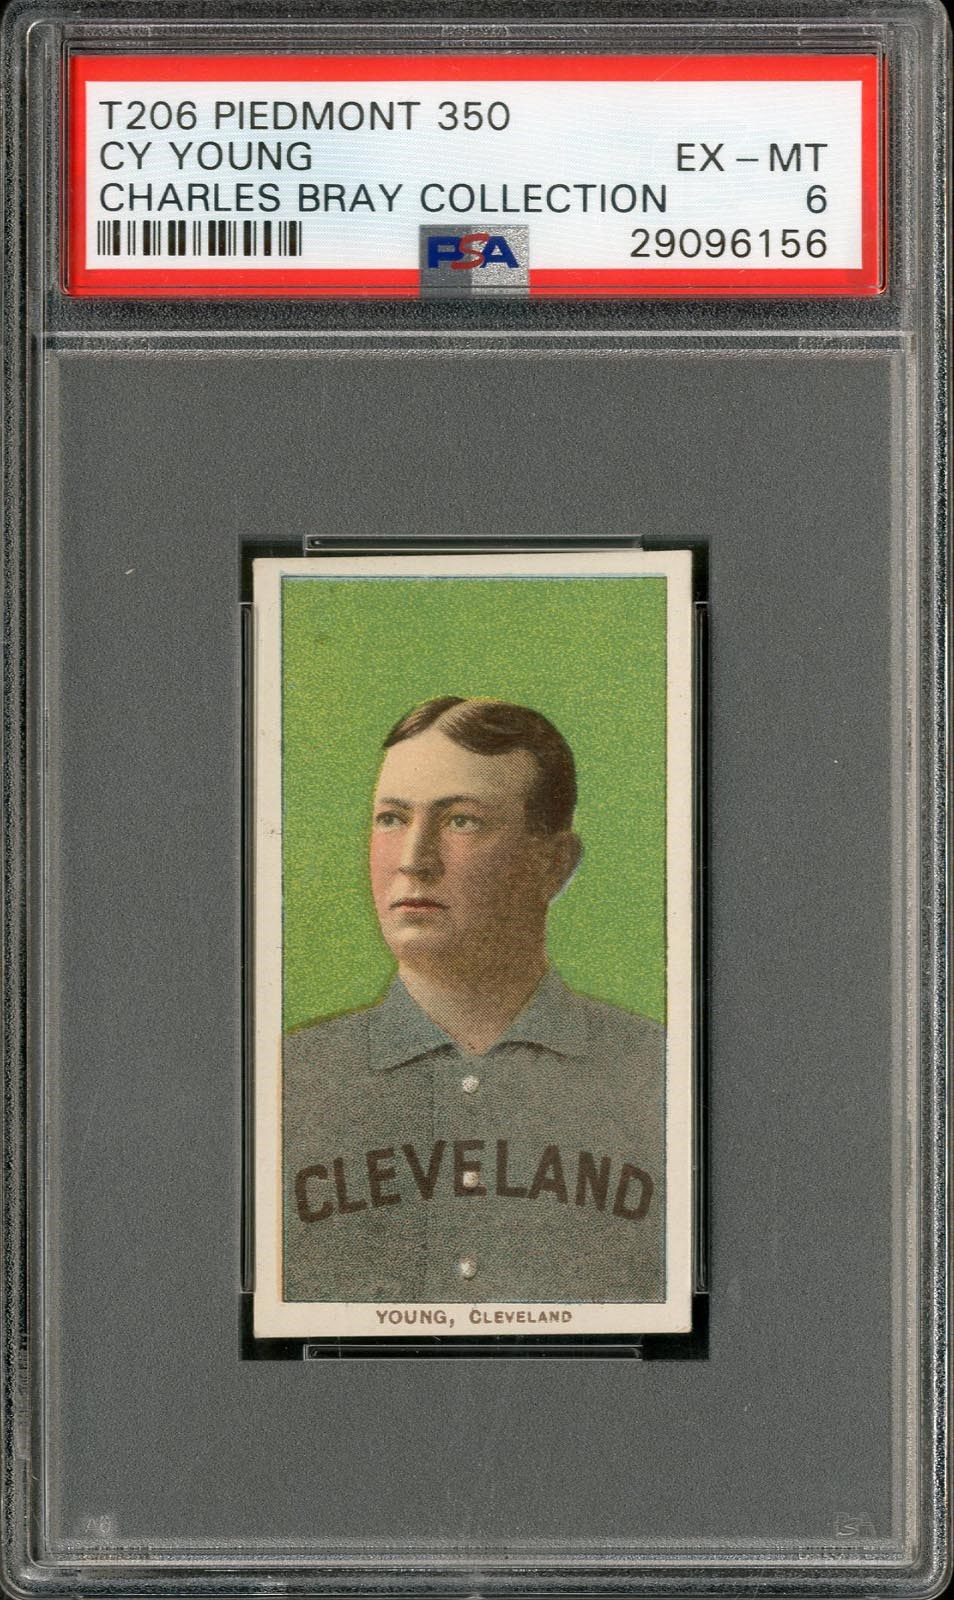 T206 Piedmont 350 Cy Young PSA EX-MT 6 Charles Bray Collection